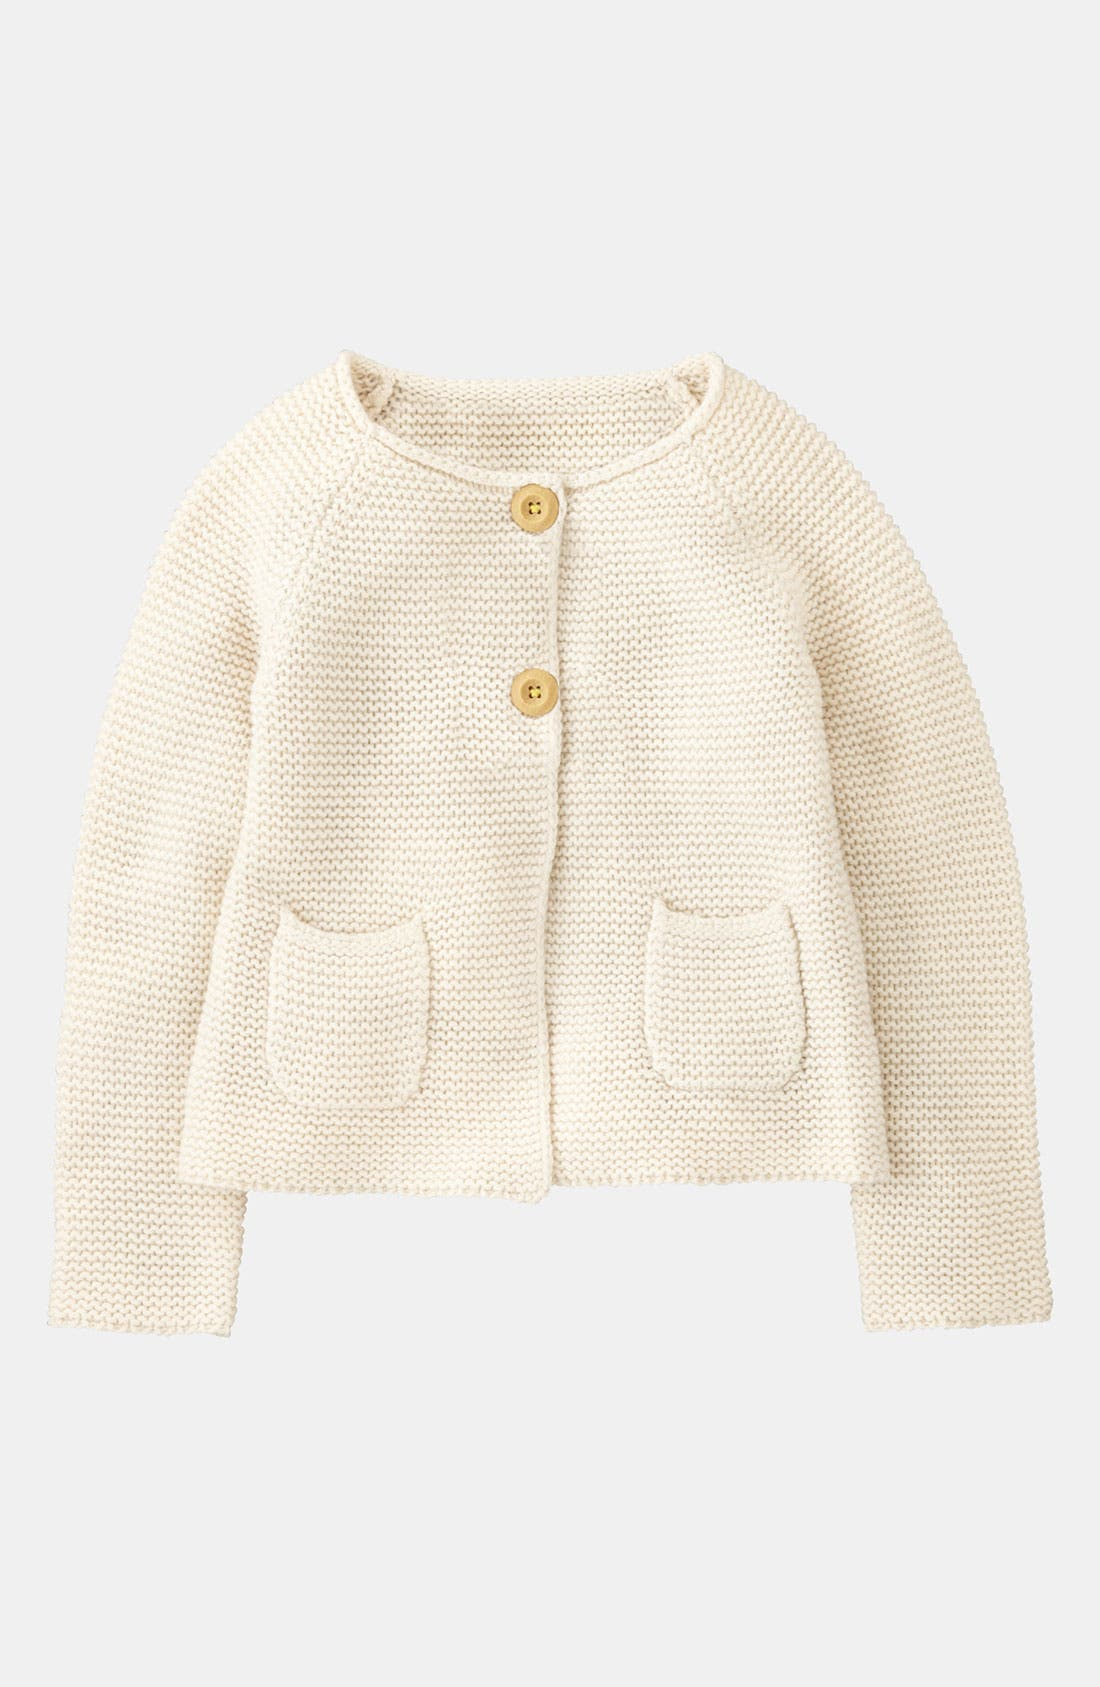 Alternate Image 1 Selected - Mini Boden Textured Cardigan (Toddler)